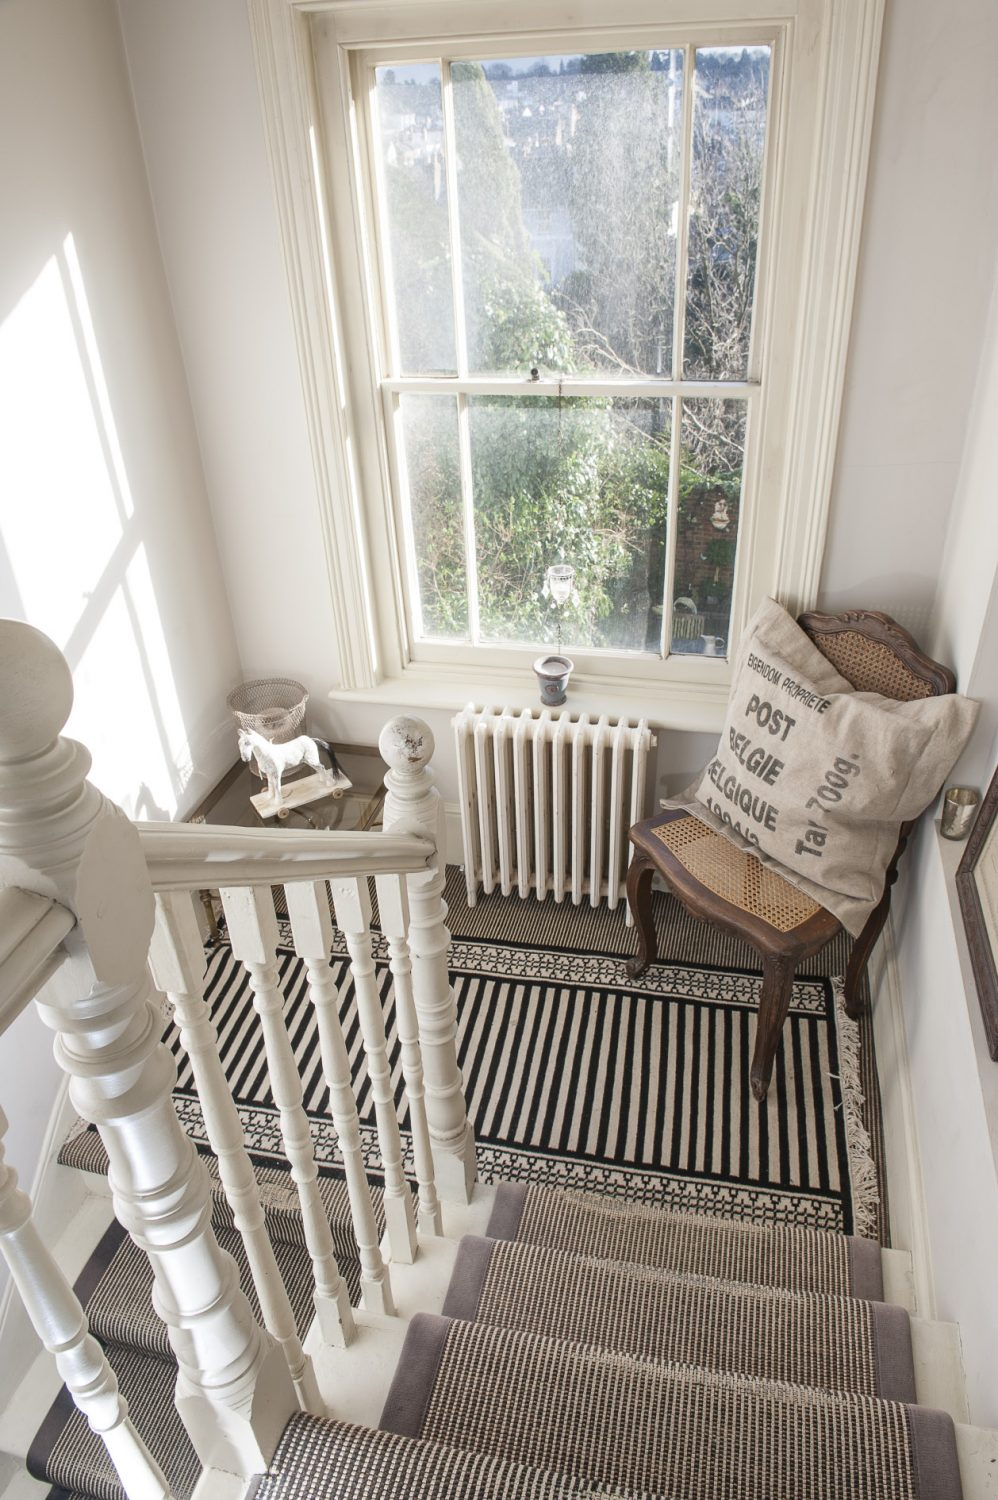 Every corner of Minnie's light and bright home is filled with fascinating finds, including these old Belgian post mail bags re-purposed as cushions